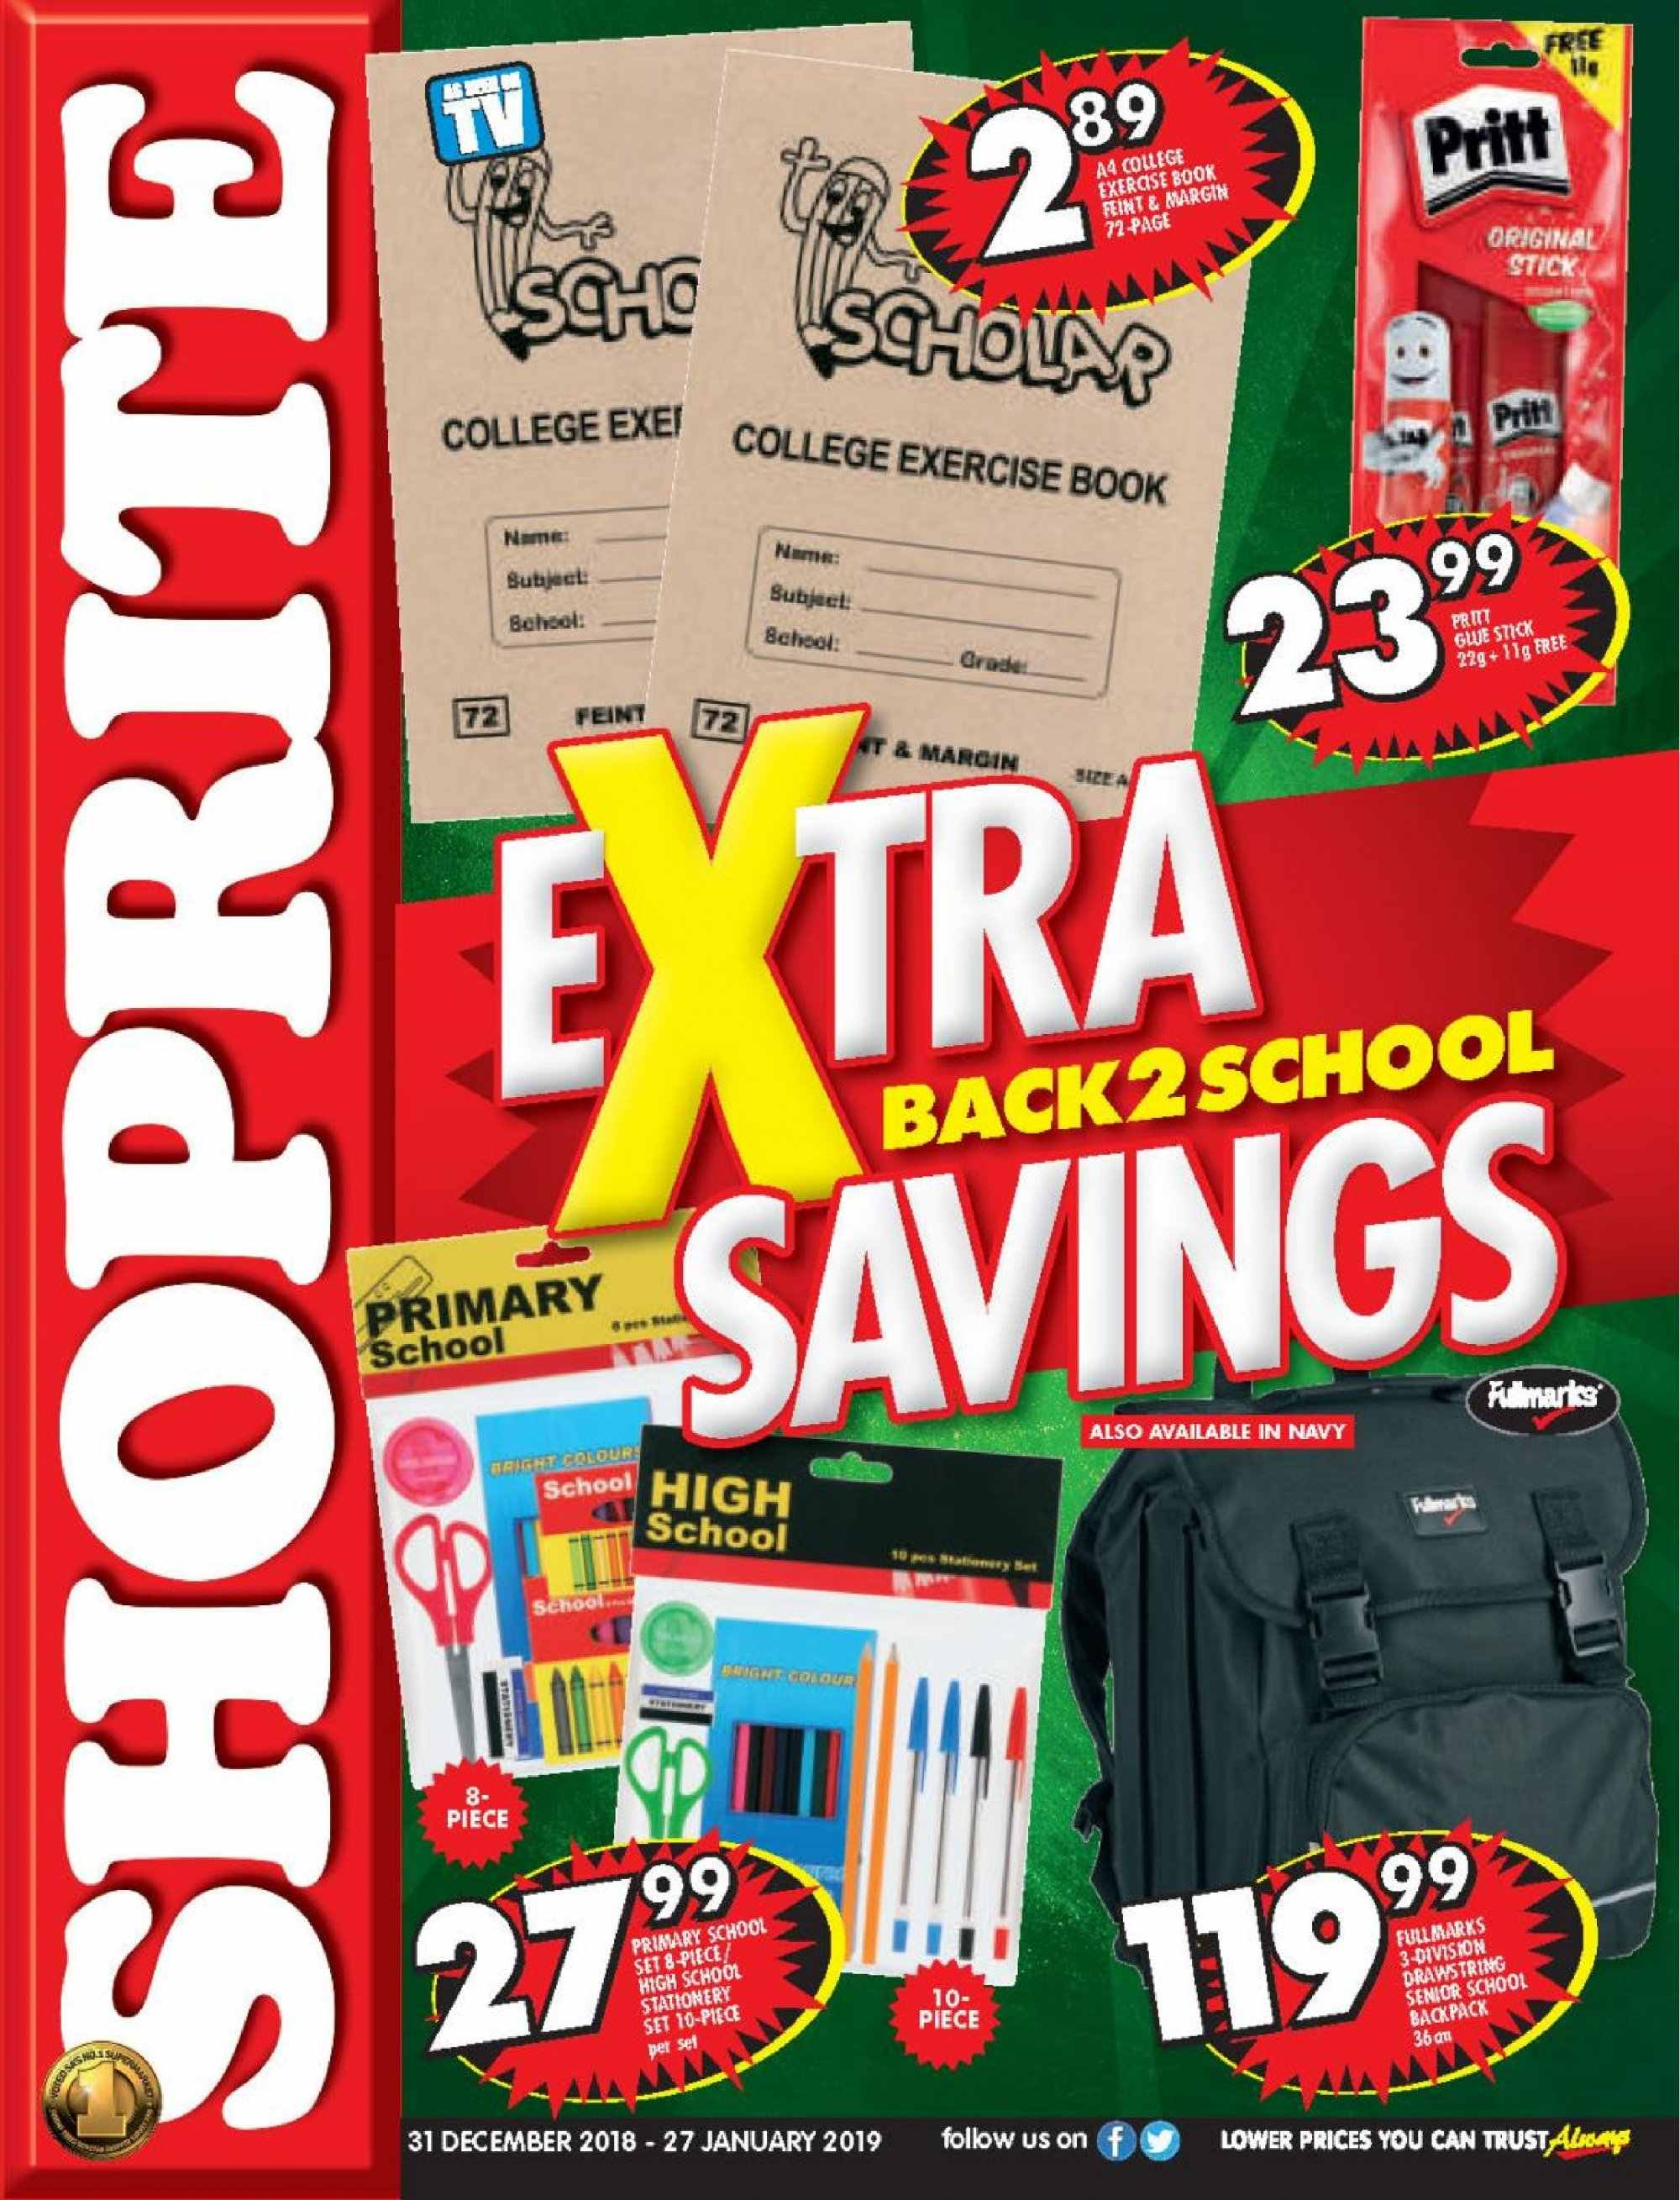 Shoprite special - 12.31.2018 - 01.27.2019 - Sales products - backpack, stick, pet. Page 1.